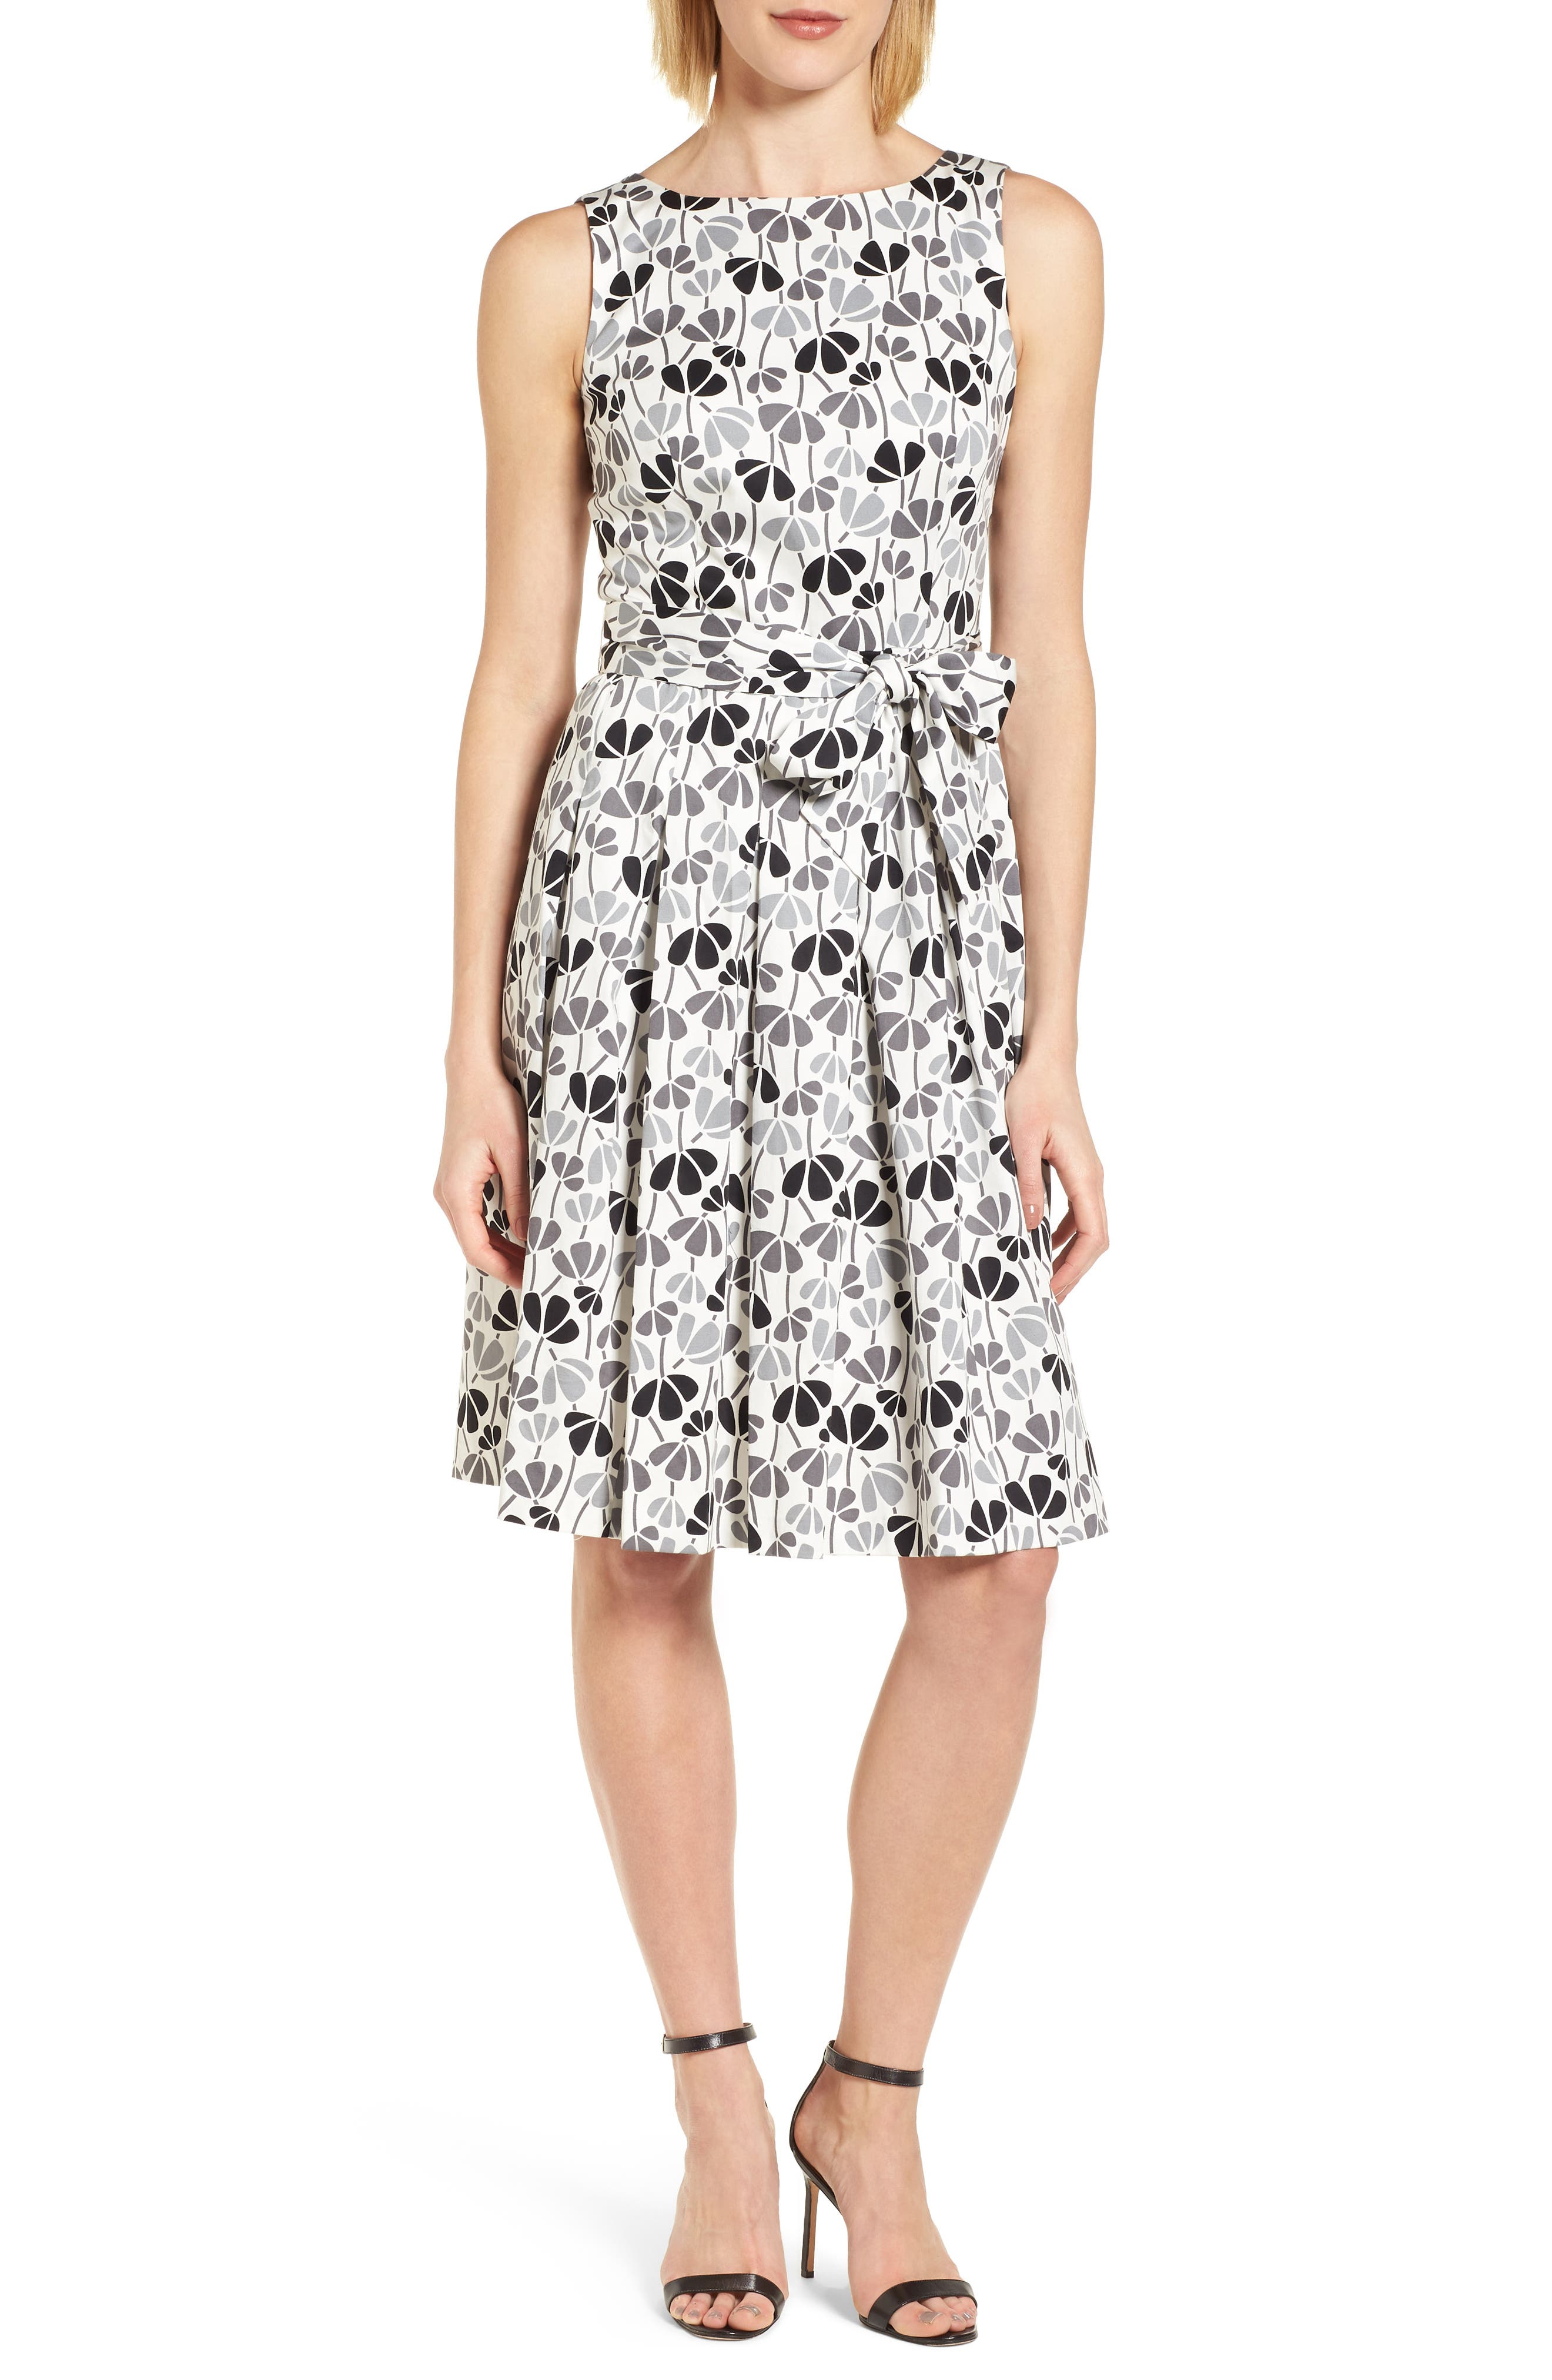 Flowerfall Fit and Flare Dress,                         Main,                         color, White/ Degas Grey Combo